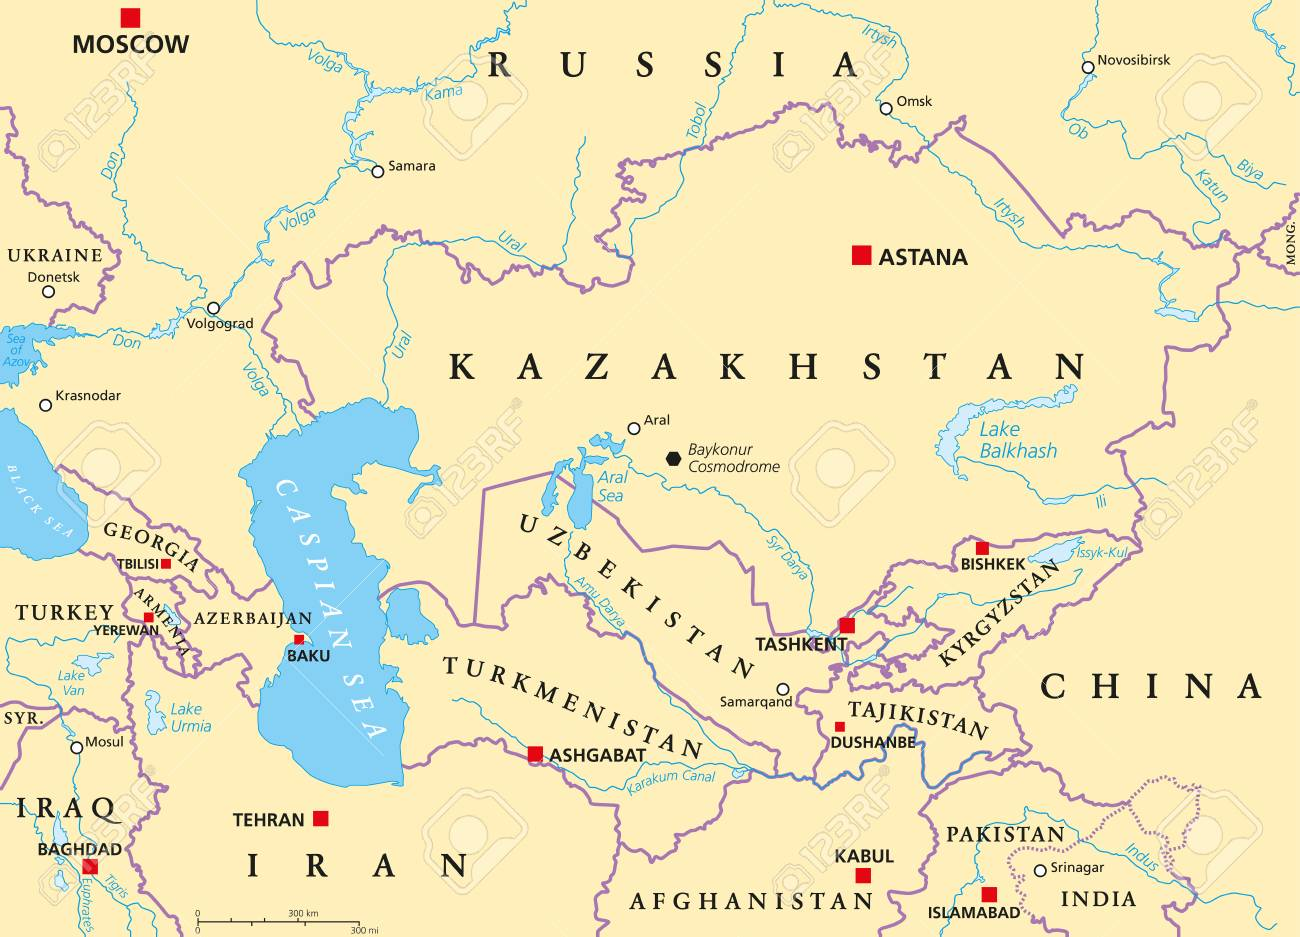 Political Map Of Central Asia.Caucasus And Central Asia Political Map With Countries Their